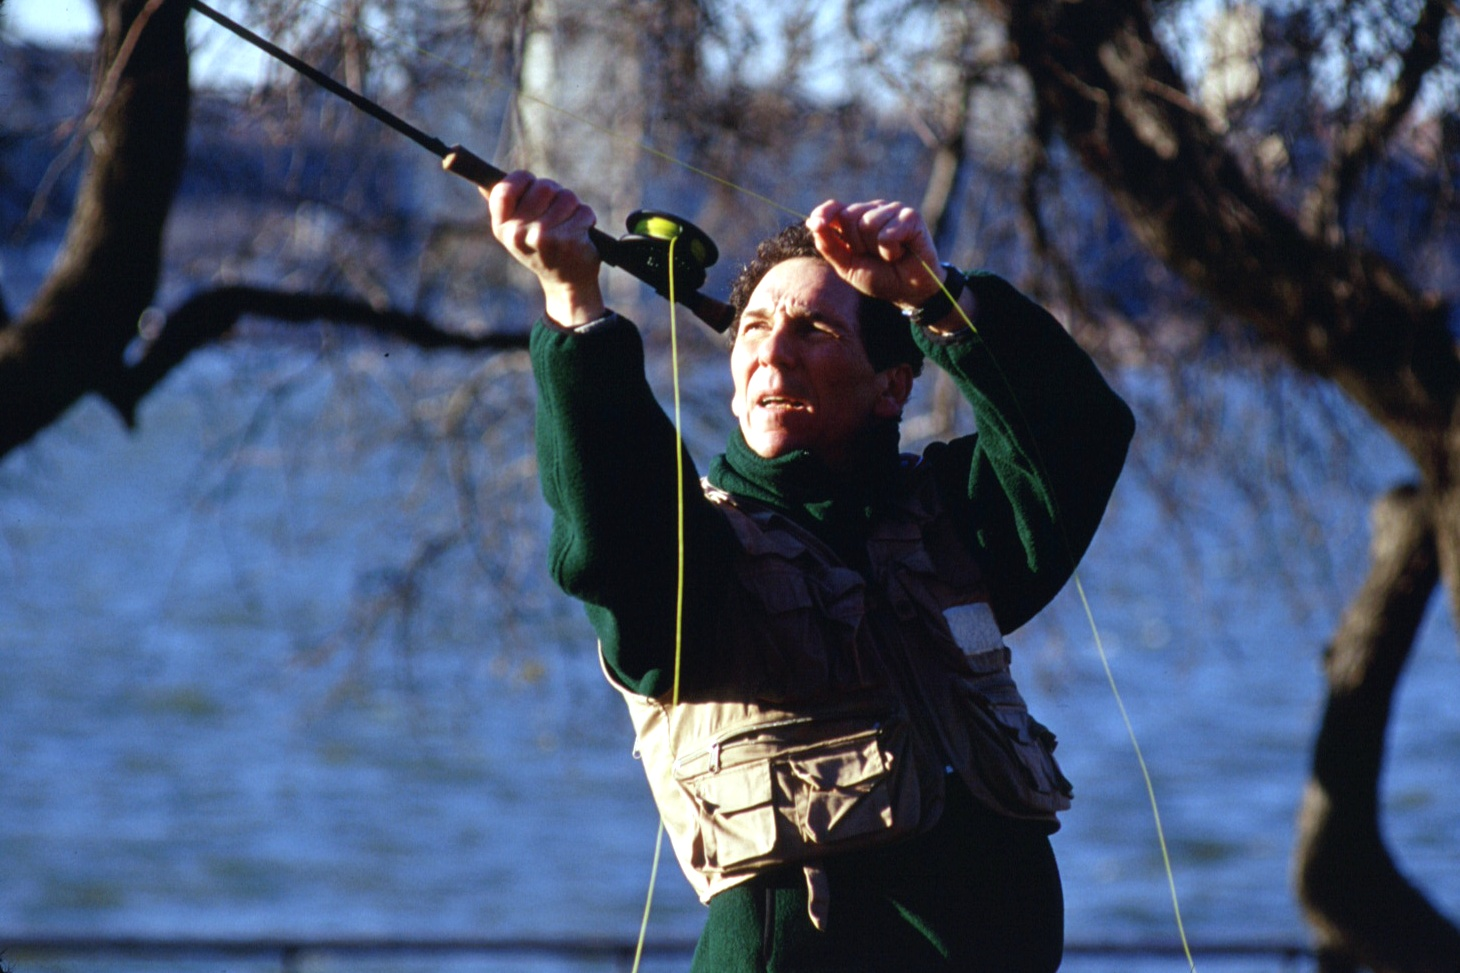 On my first day out fly fishing, I thought I committed a grave angling etiquette crime